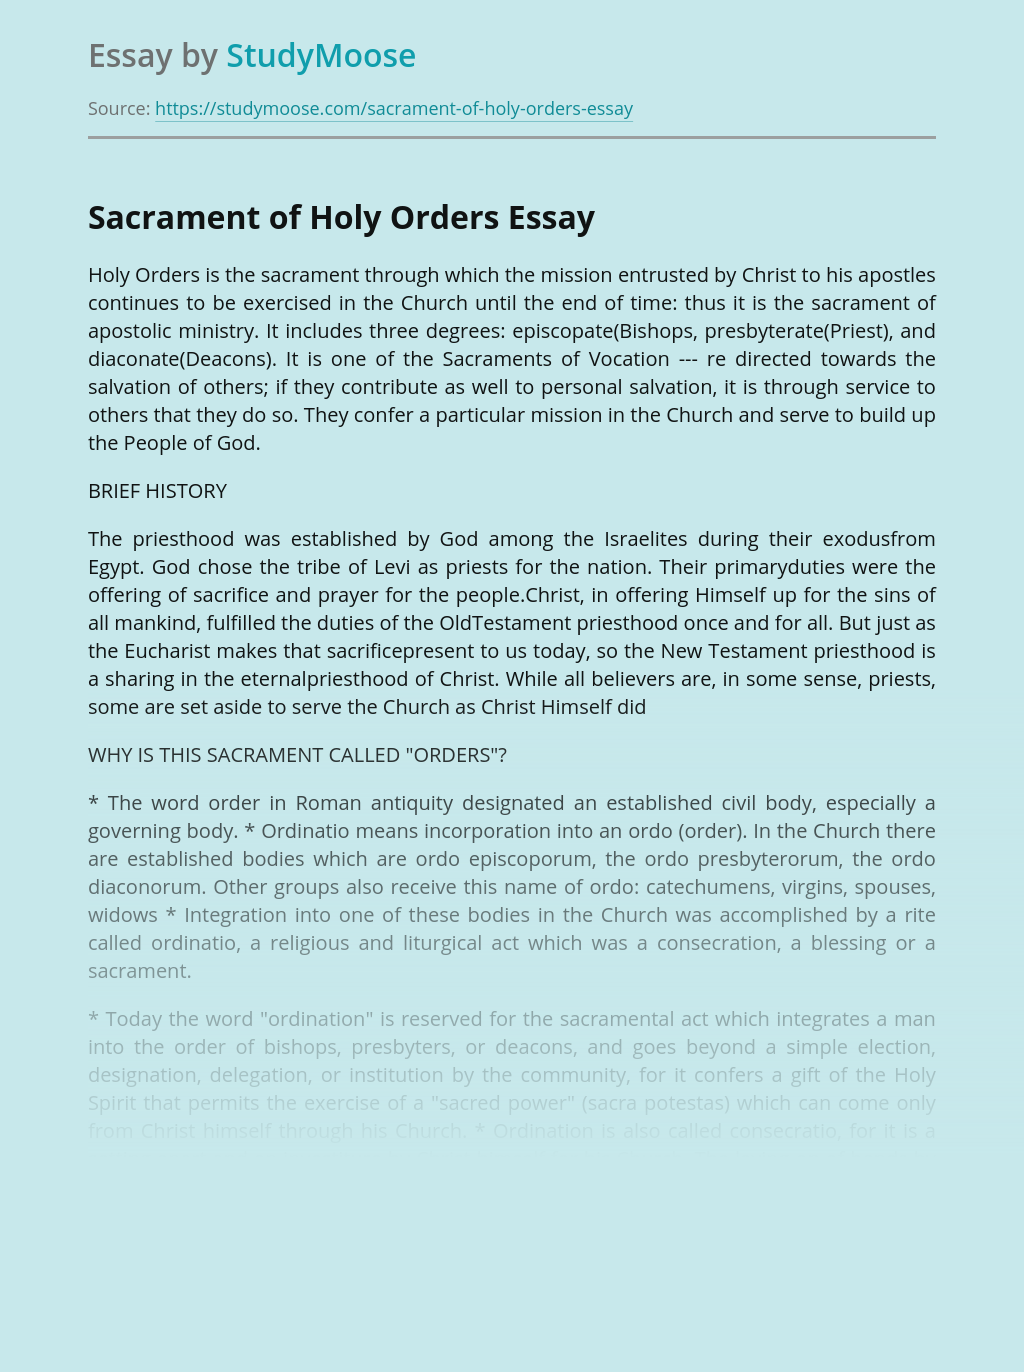 Sacrament of Holy Orders in Christianity